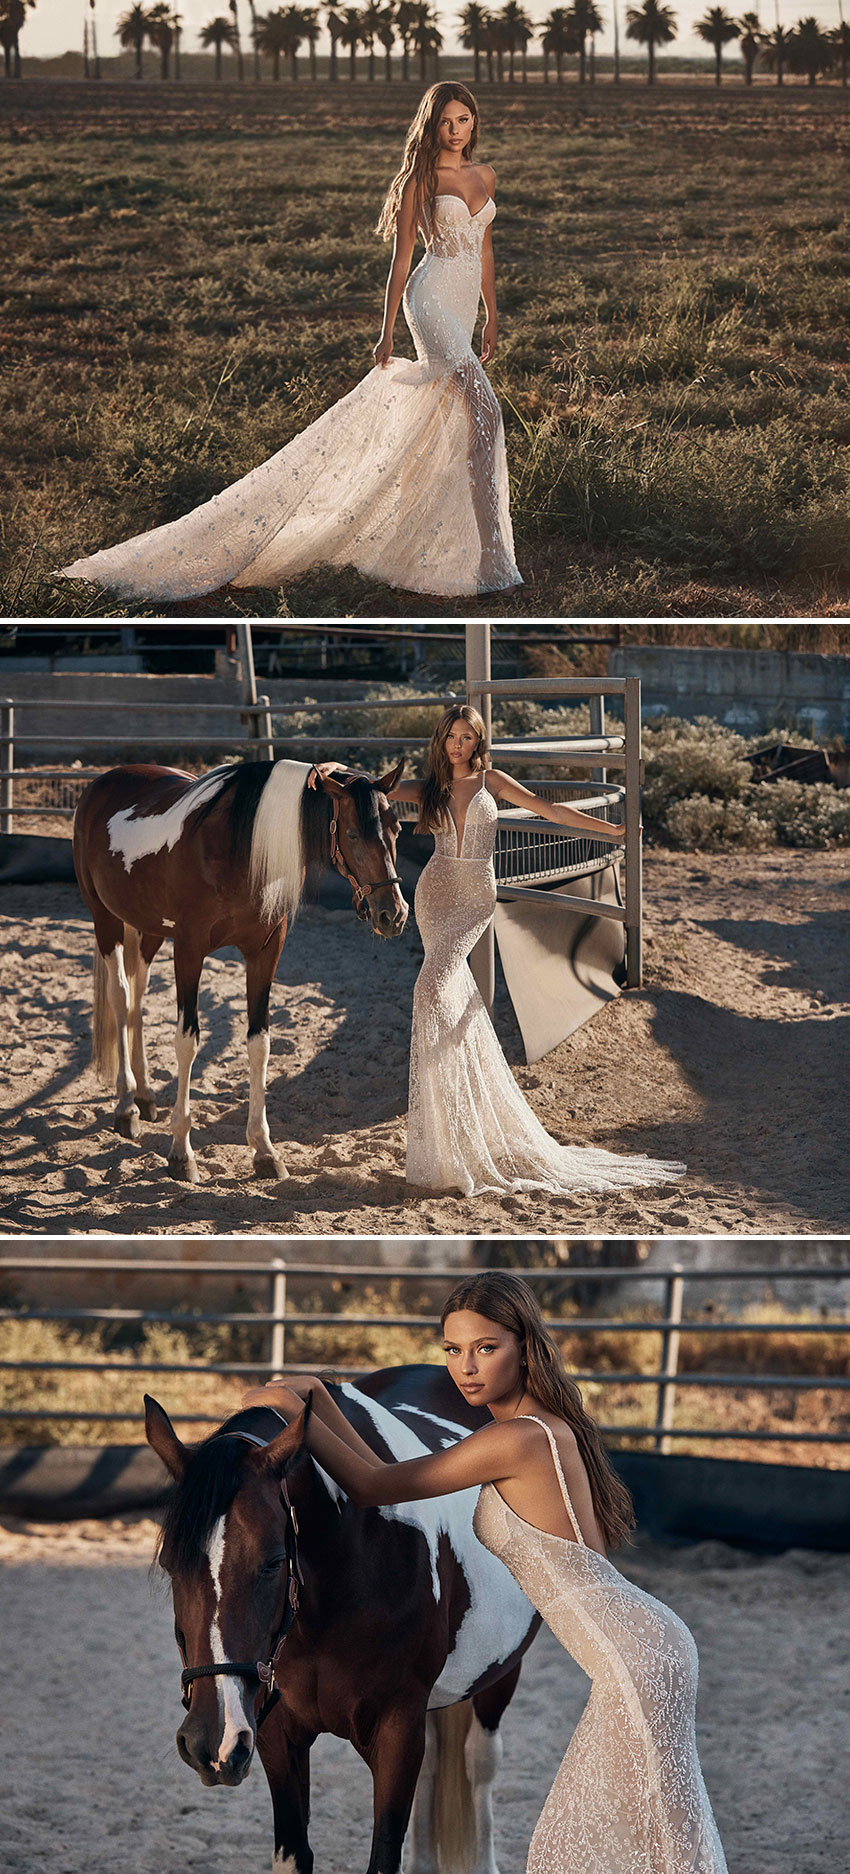 Gala by Galia Lahav Fall 2021 is available to purchse online and they offer virtual consultations via zoom in Perfect Wedding Magazine